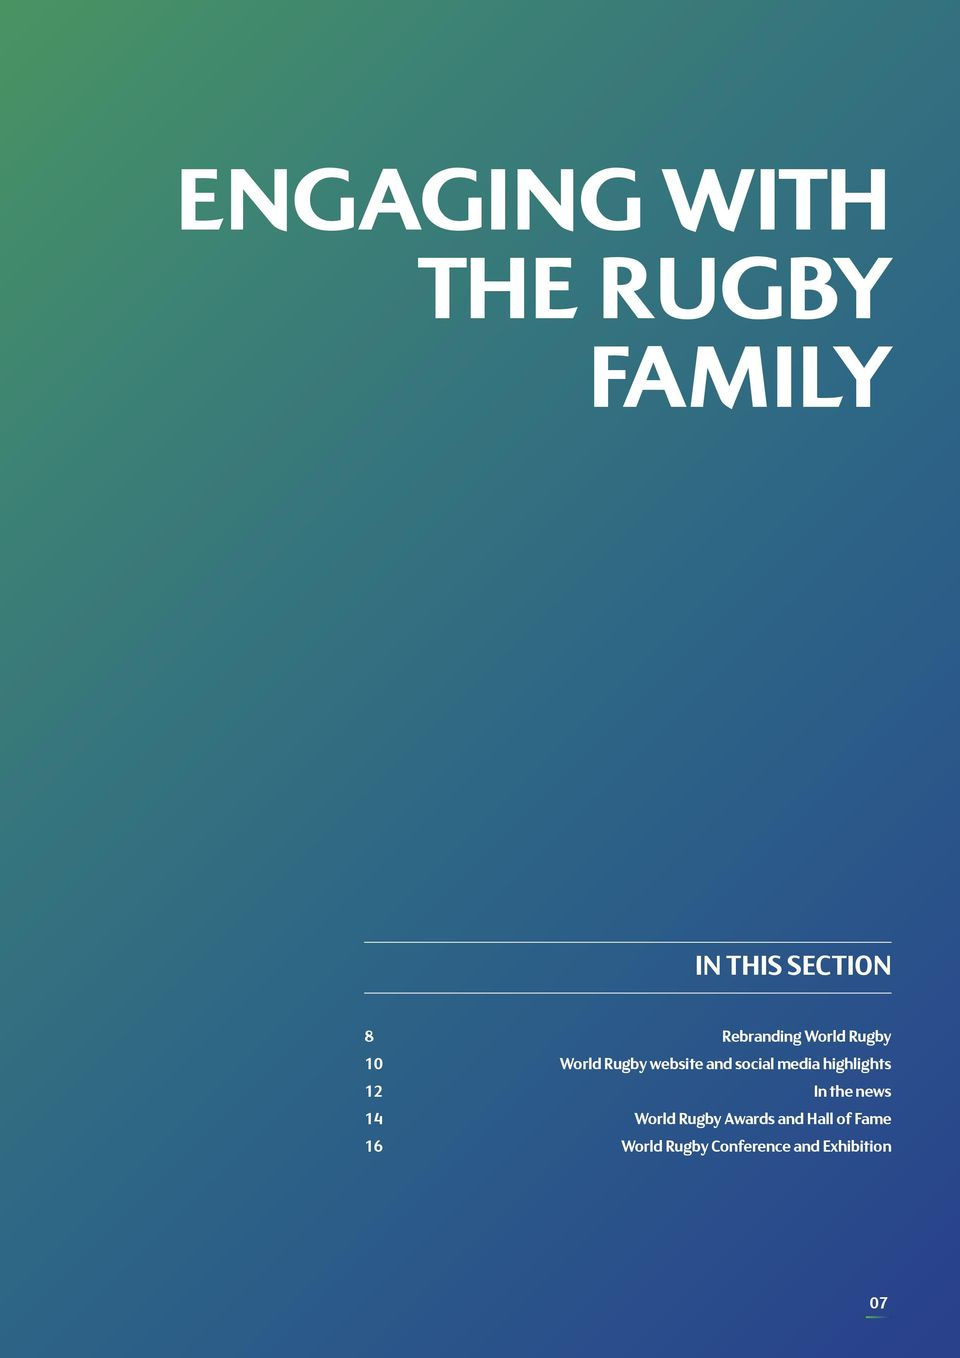 social media highlights 12 In the news 14 World Rugby